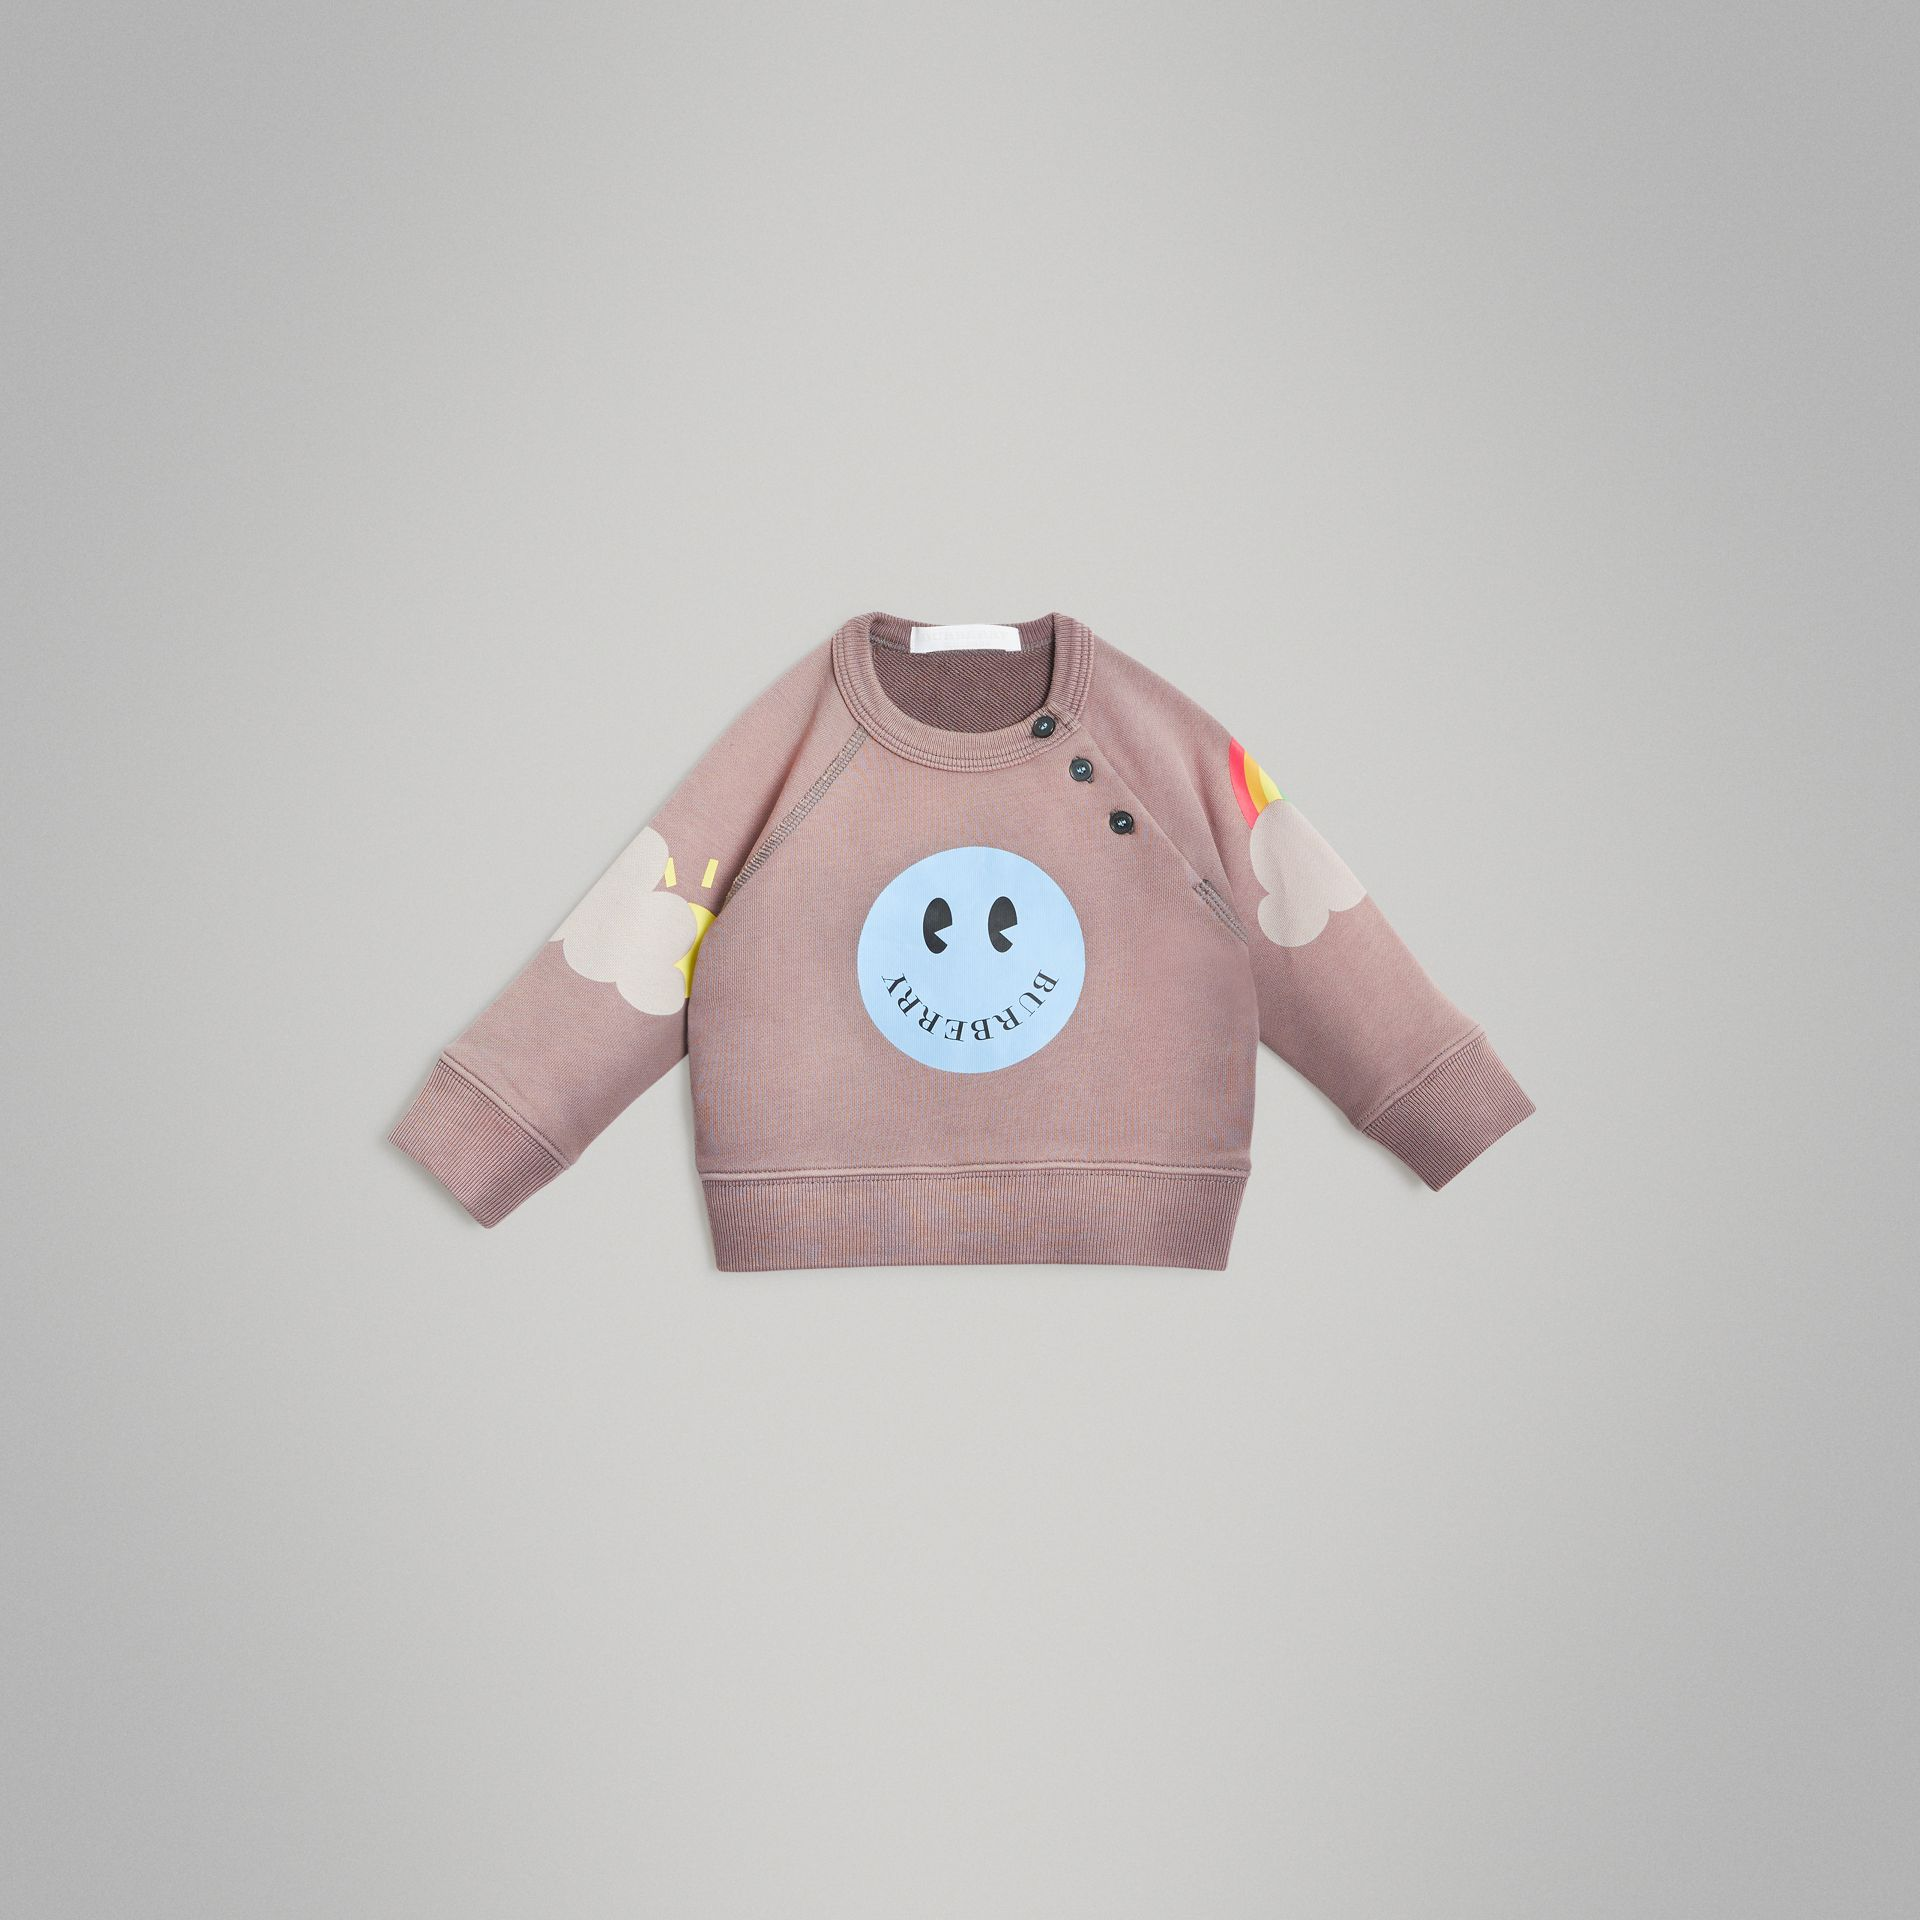 Smiley Face Print Cotton Sweatshirt in Mauve - Children | Burberry - gallery image 0